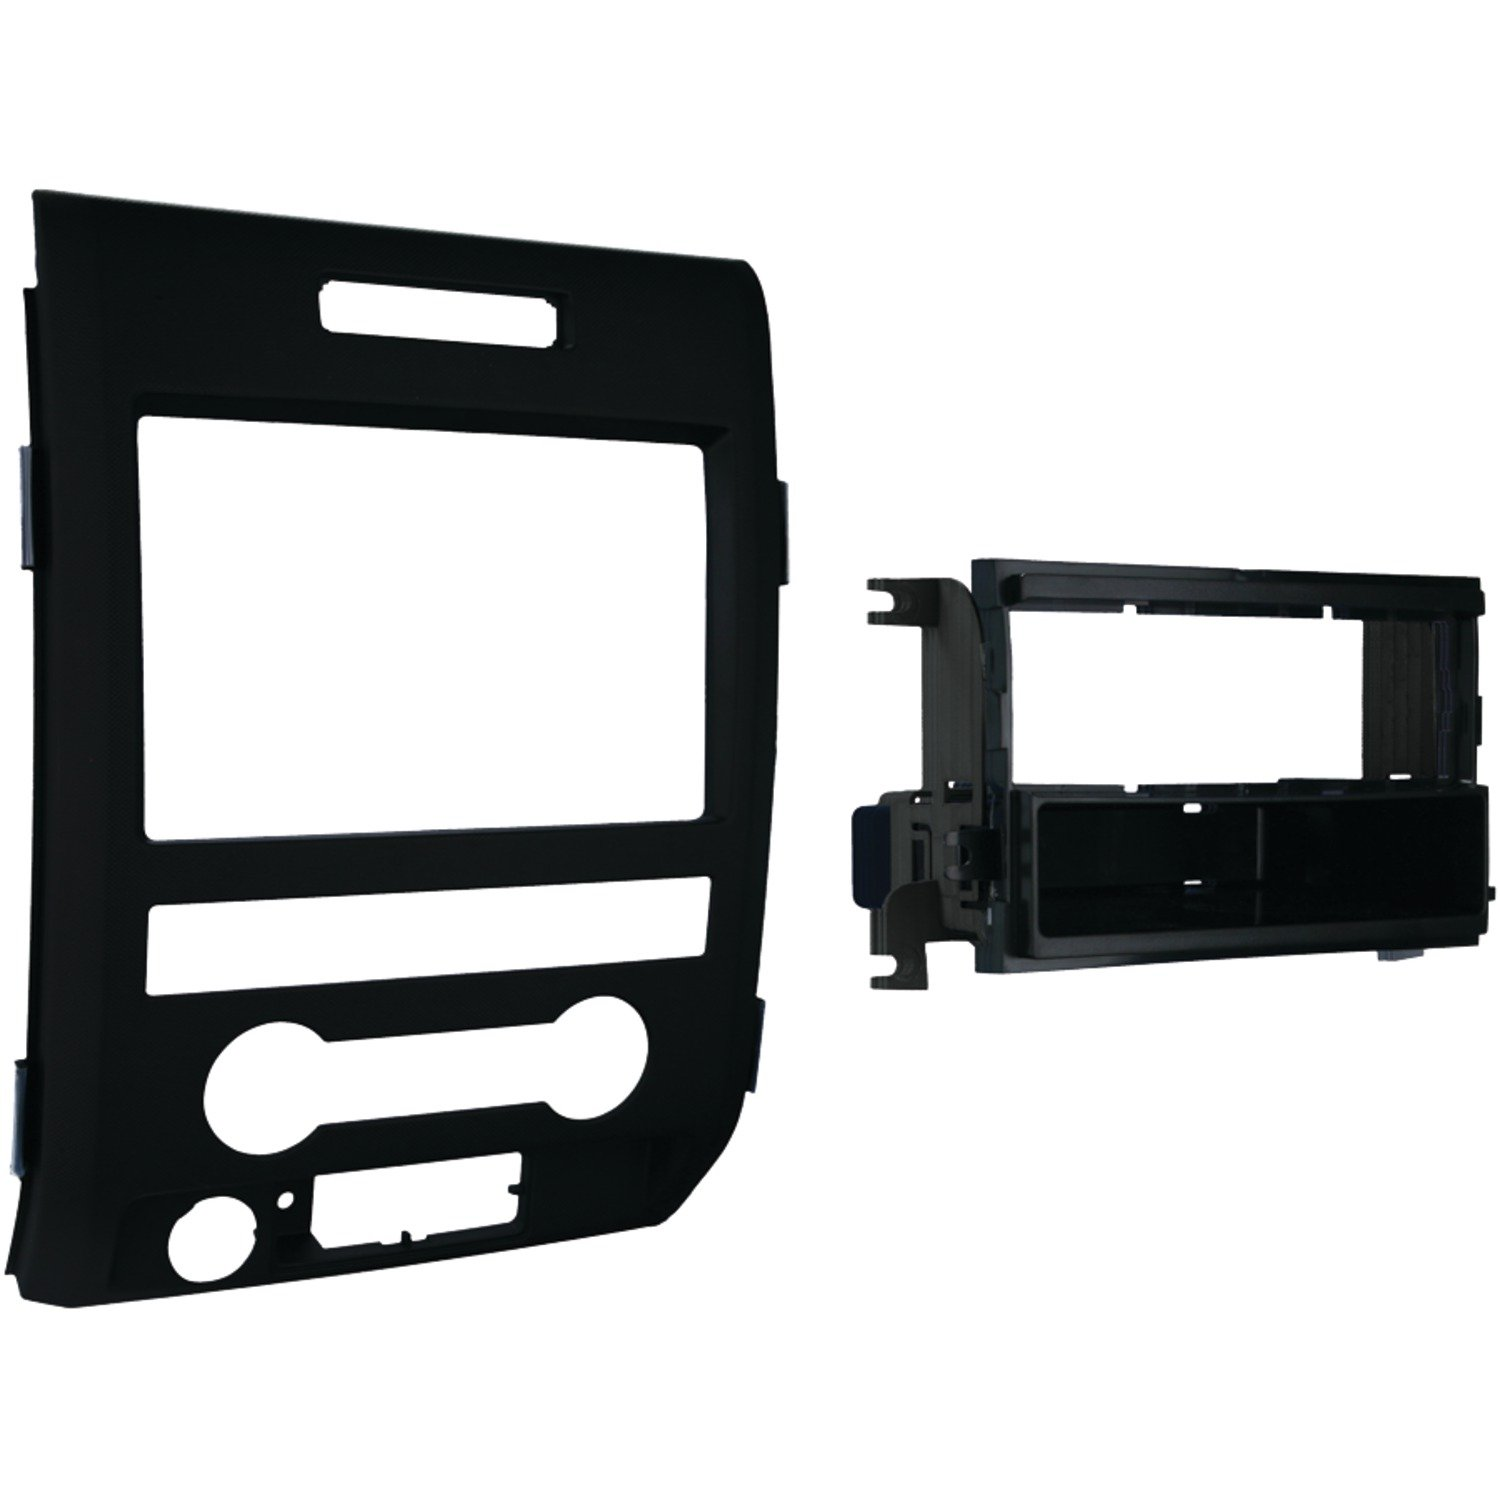 61EJfEsElrL._SL1500_ amazon com metra 99 5820b single din installation dash kit for Dash Kit for F150 at crackthecode.co